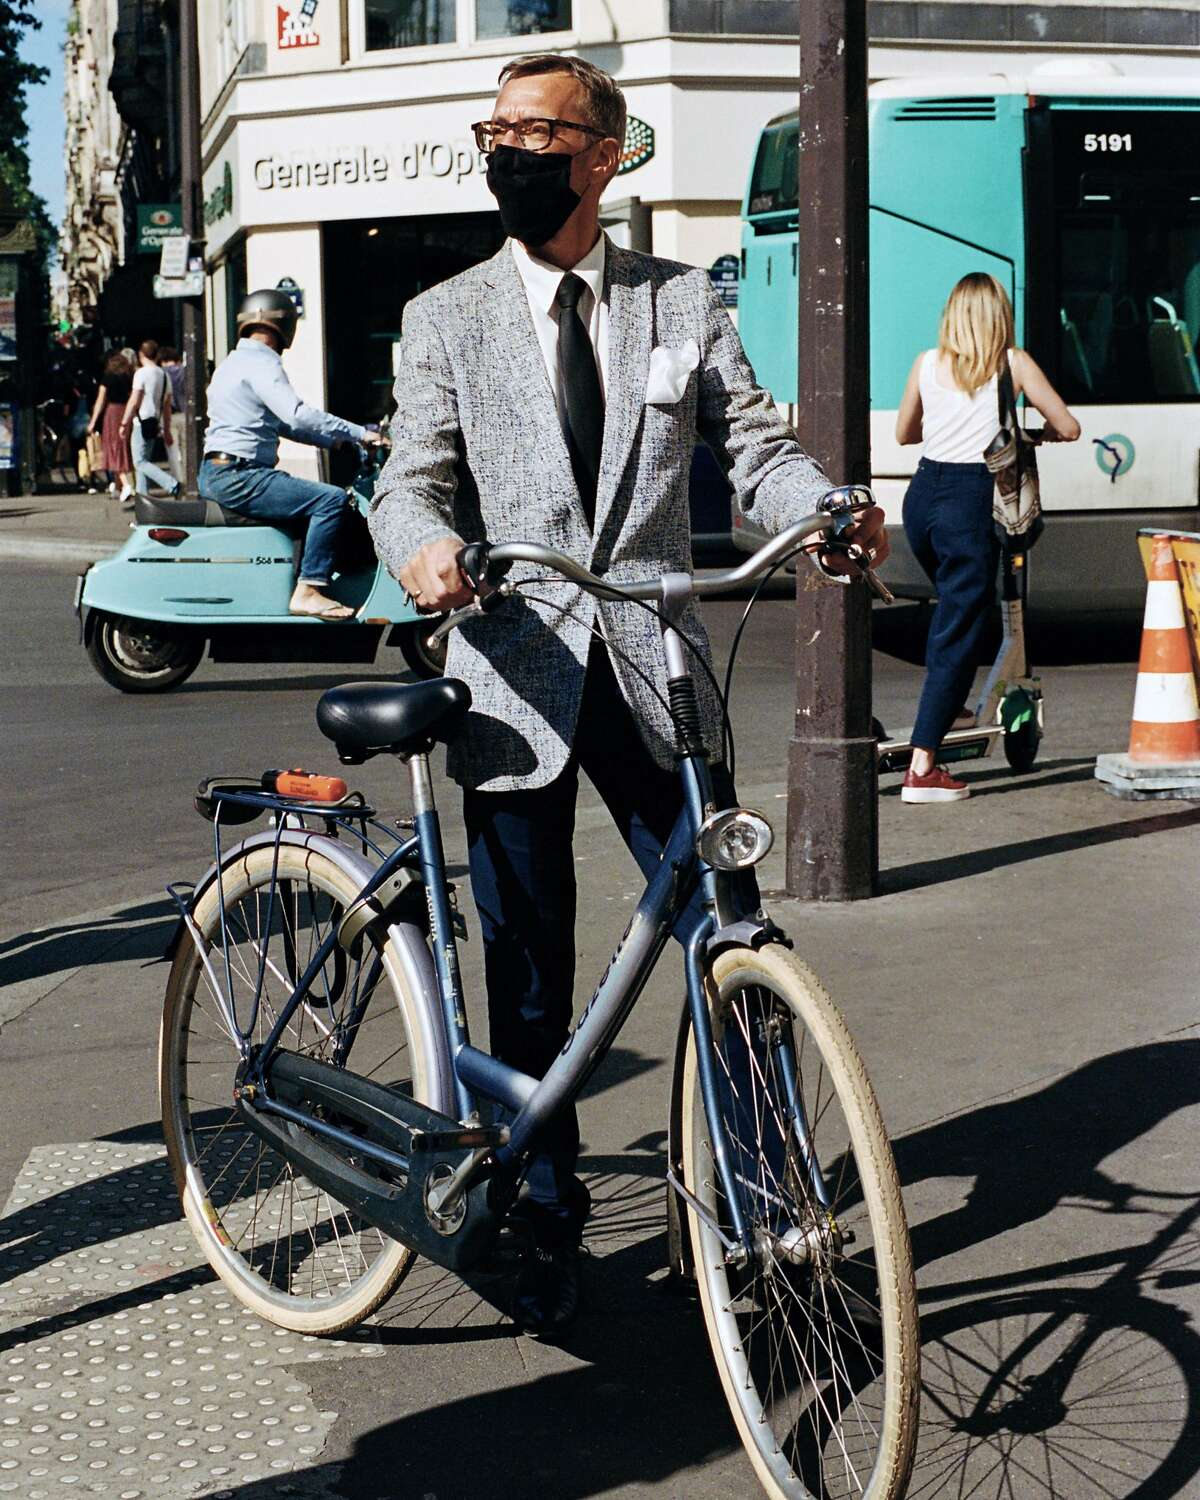 Christophe Tafforeau, 52, a commercial director at a job training agency, with his bicycle outside his office in Paris on May 19, 2020. As European cities emerge from quarantines, bicycles are playing a central role in getting the work force moving again. (Maxime La/The New York Times)